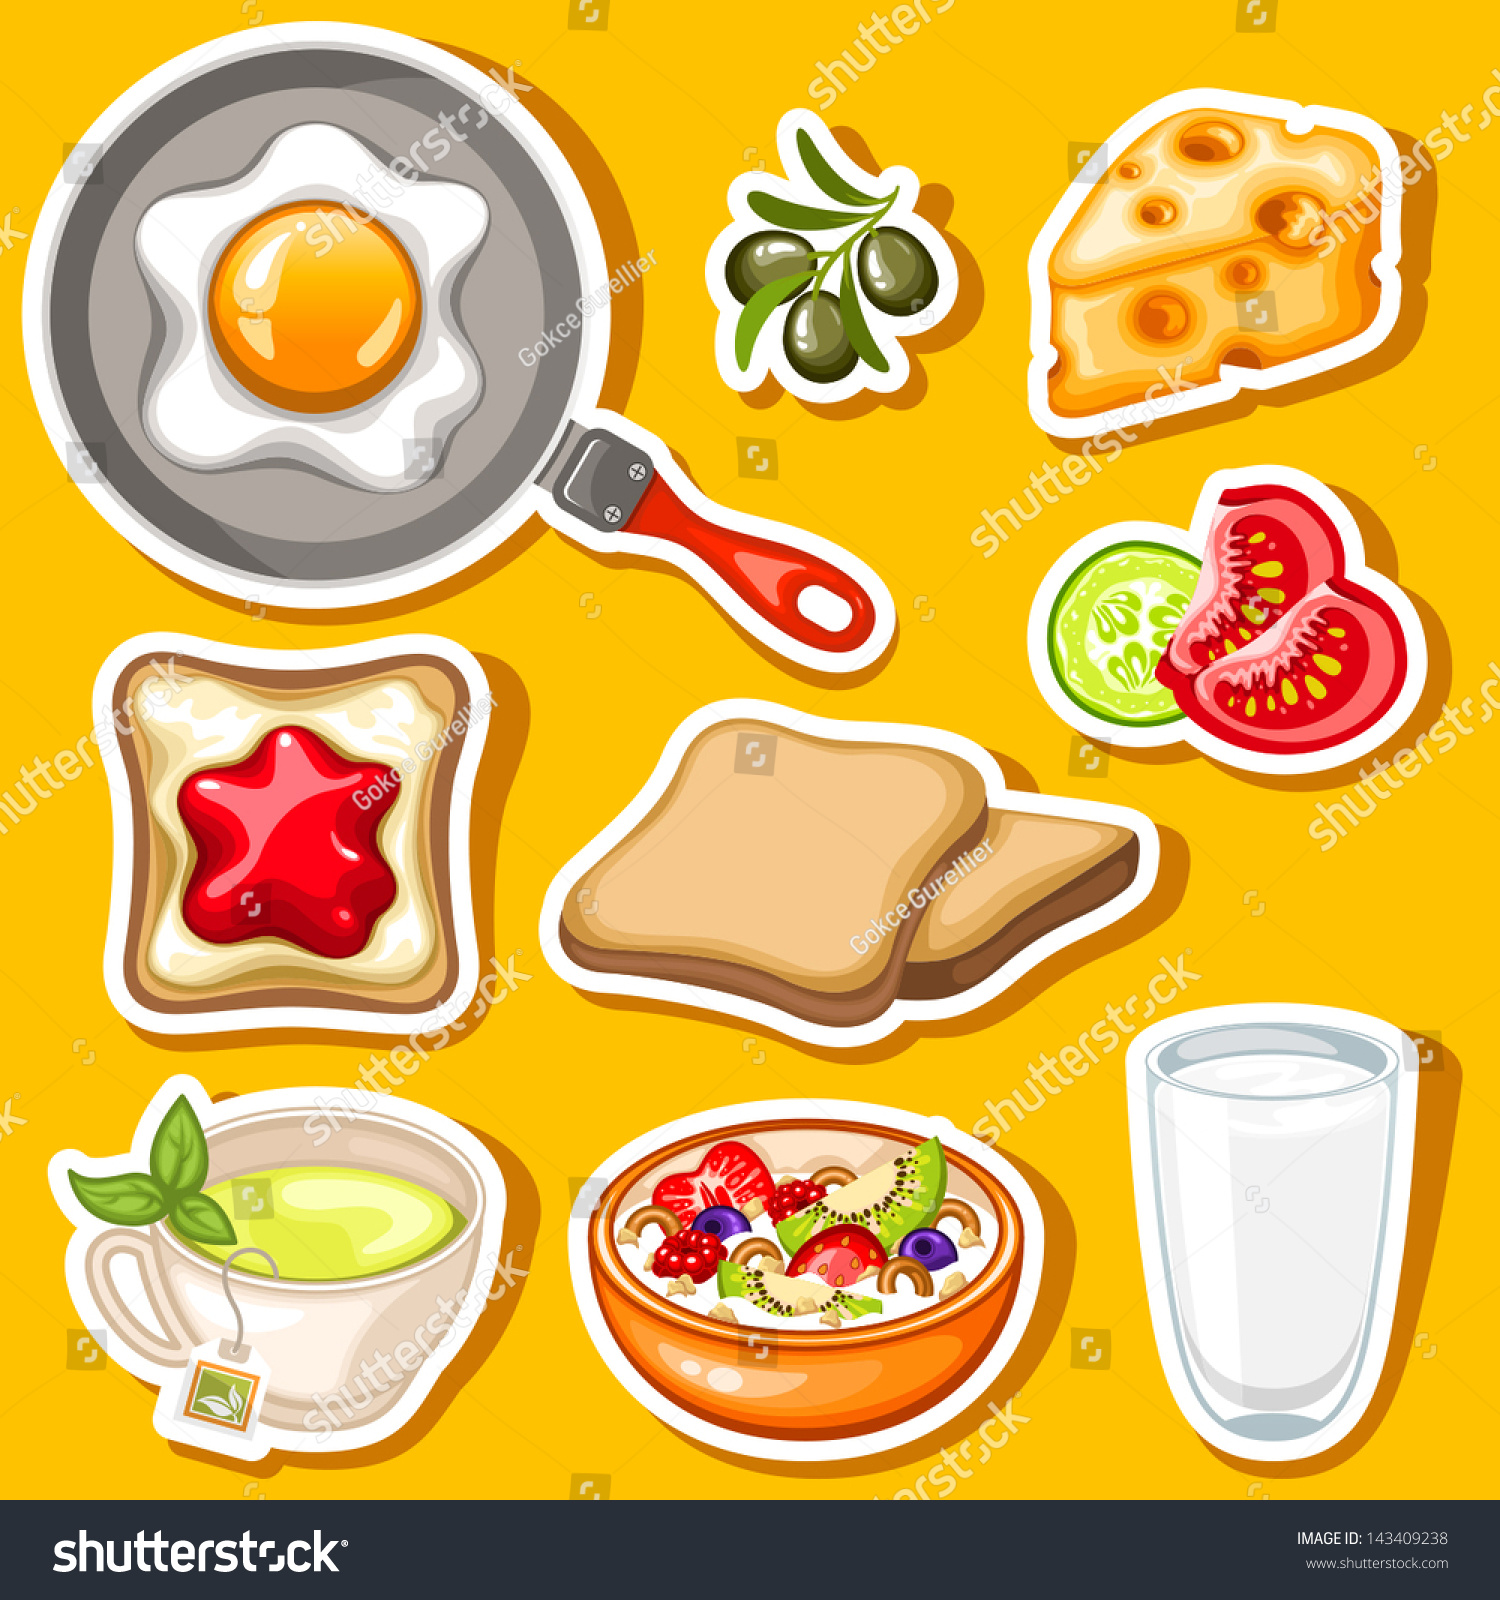 Breakfast Cartoon healthy breakfast stock vectors & vector clip art ...